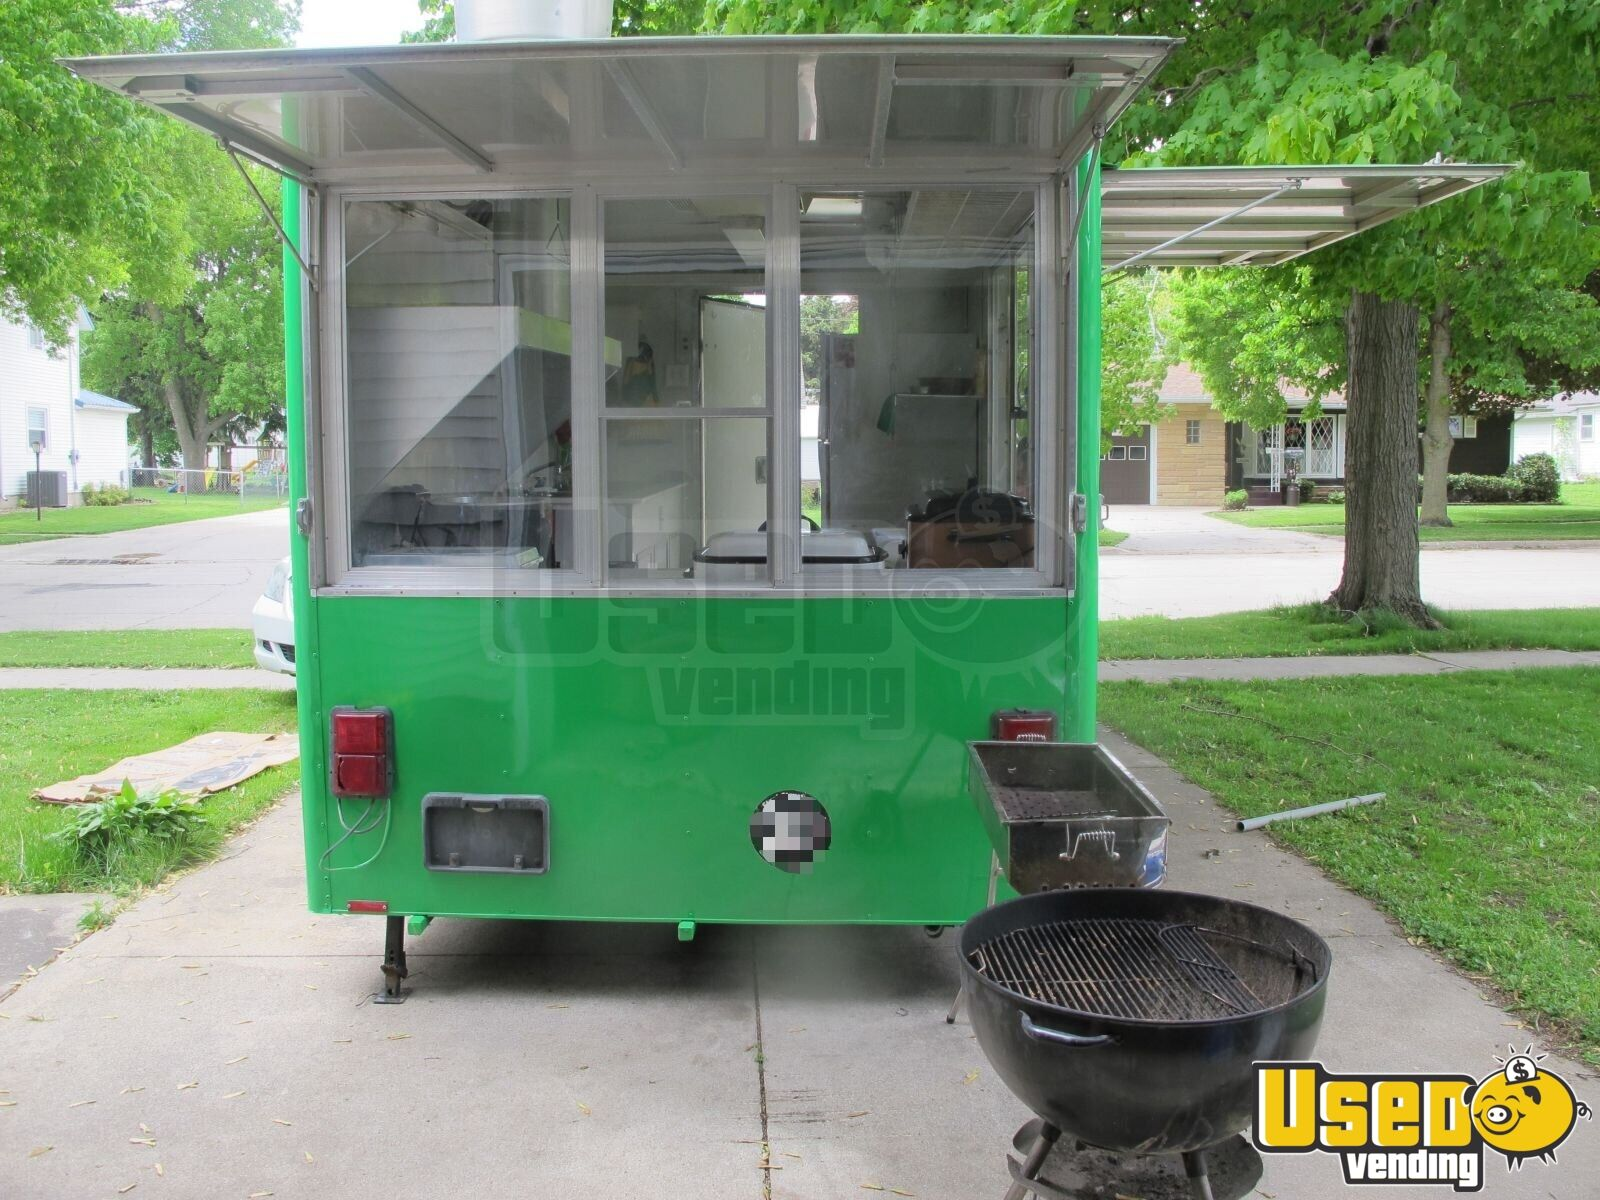 1996 Wells Cargo Concession Trailer Air Conditioning Florida for Sale - 2